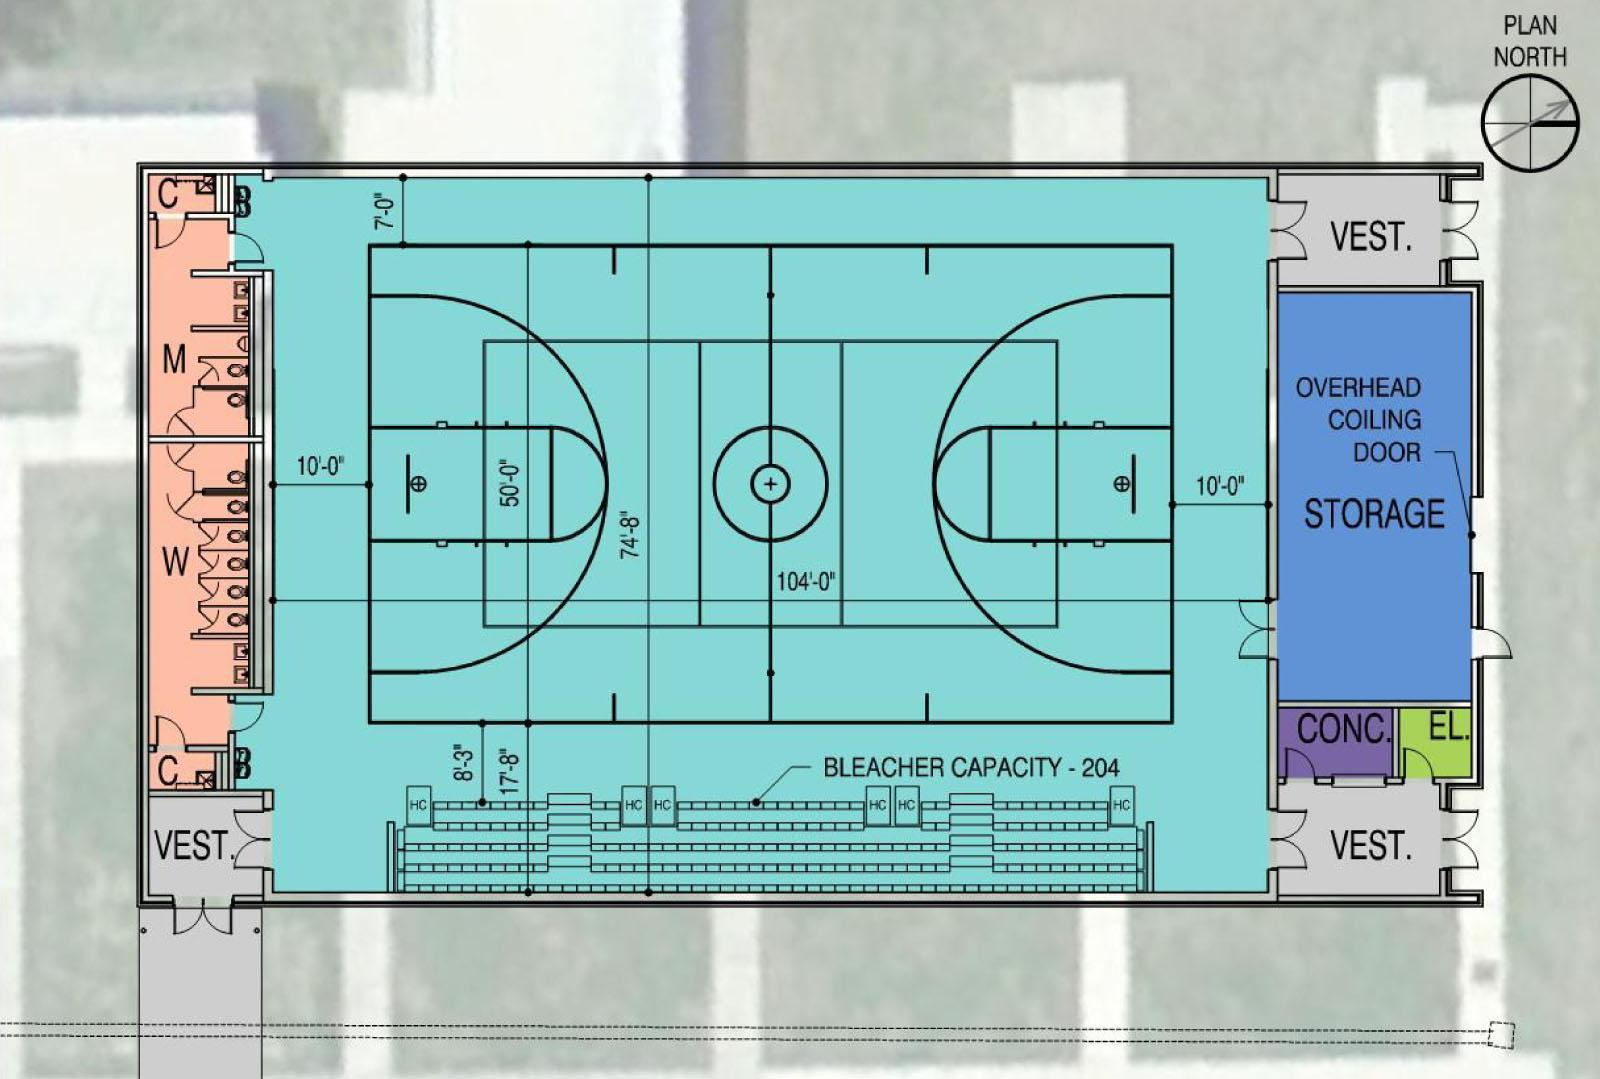 Basketball Court Floor Plan: Design For Lafayette High School Auxiliary Gym Brings